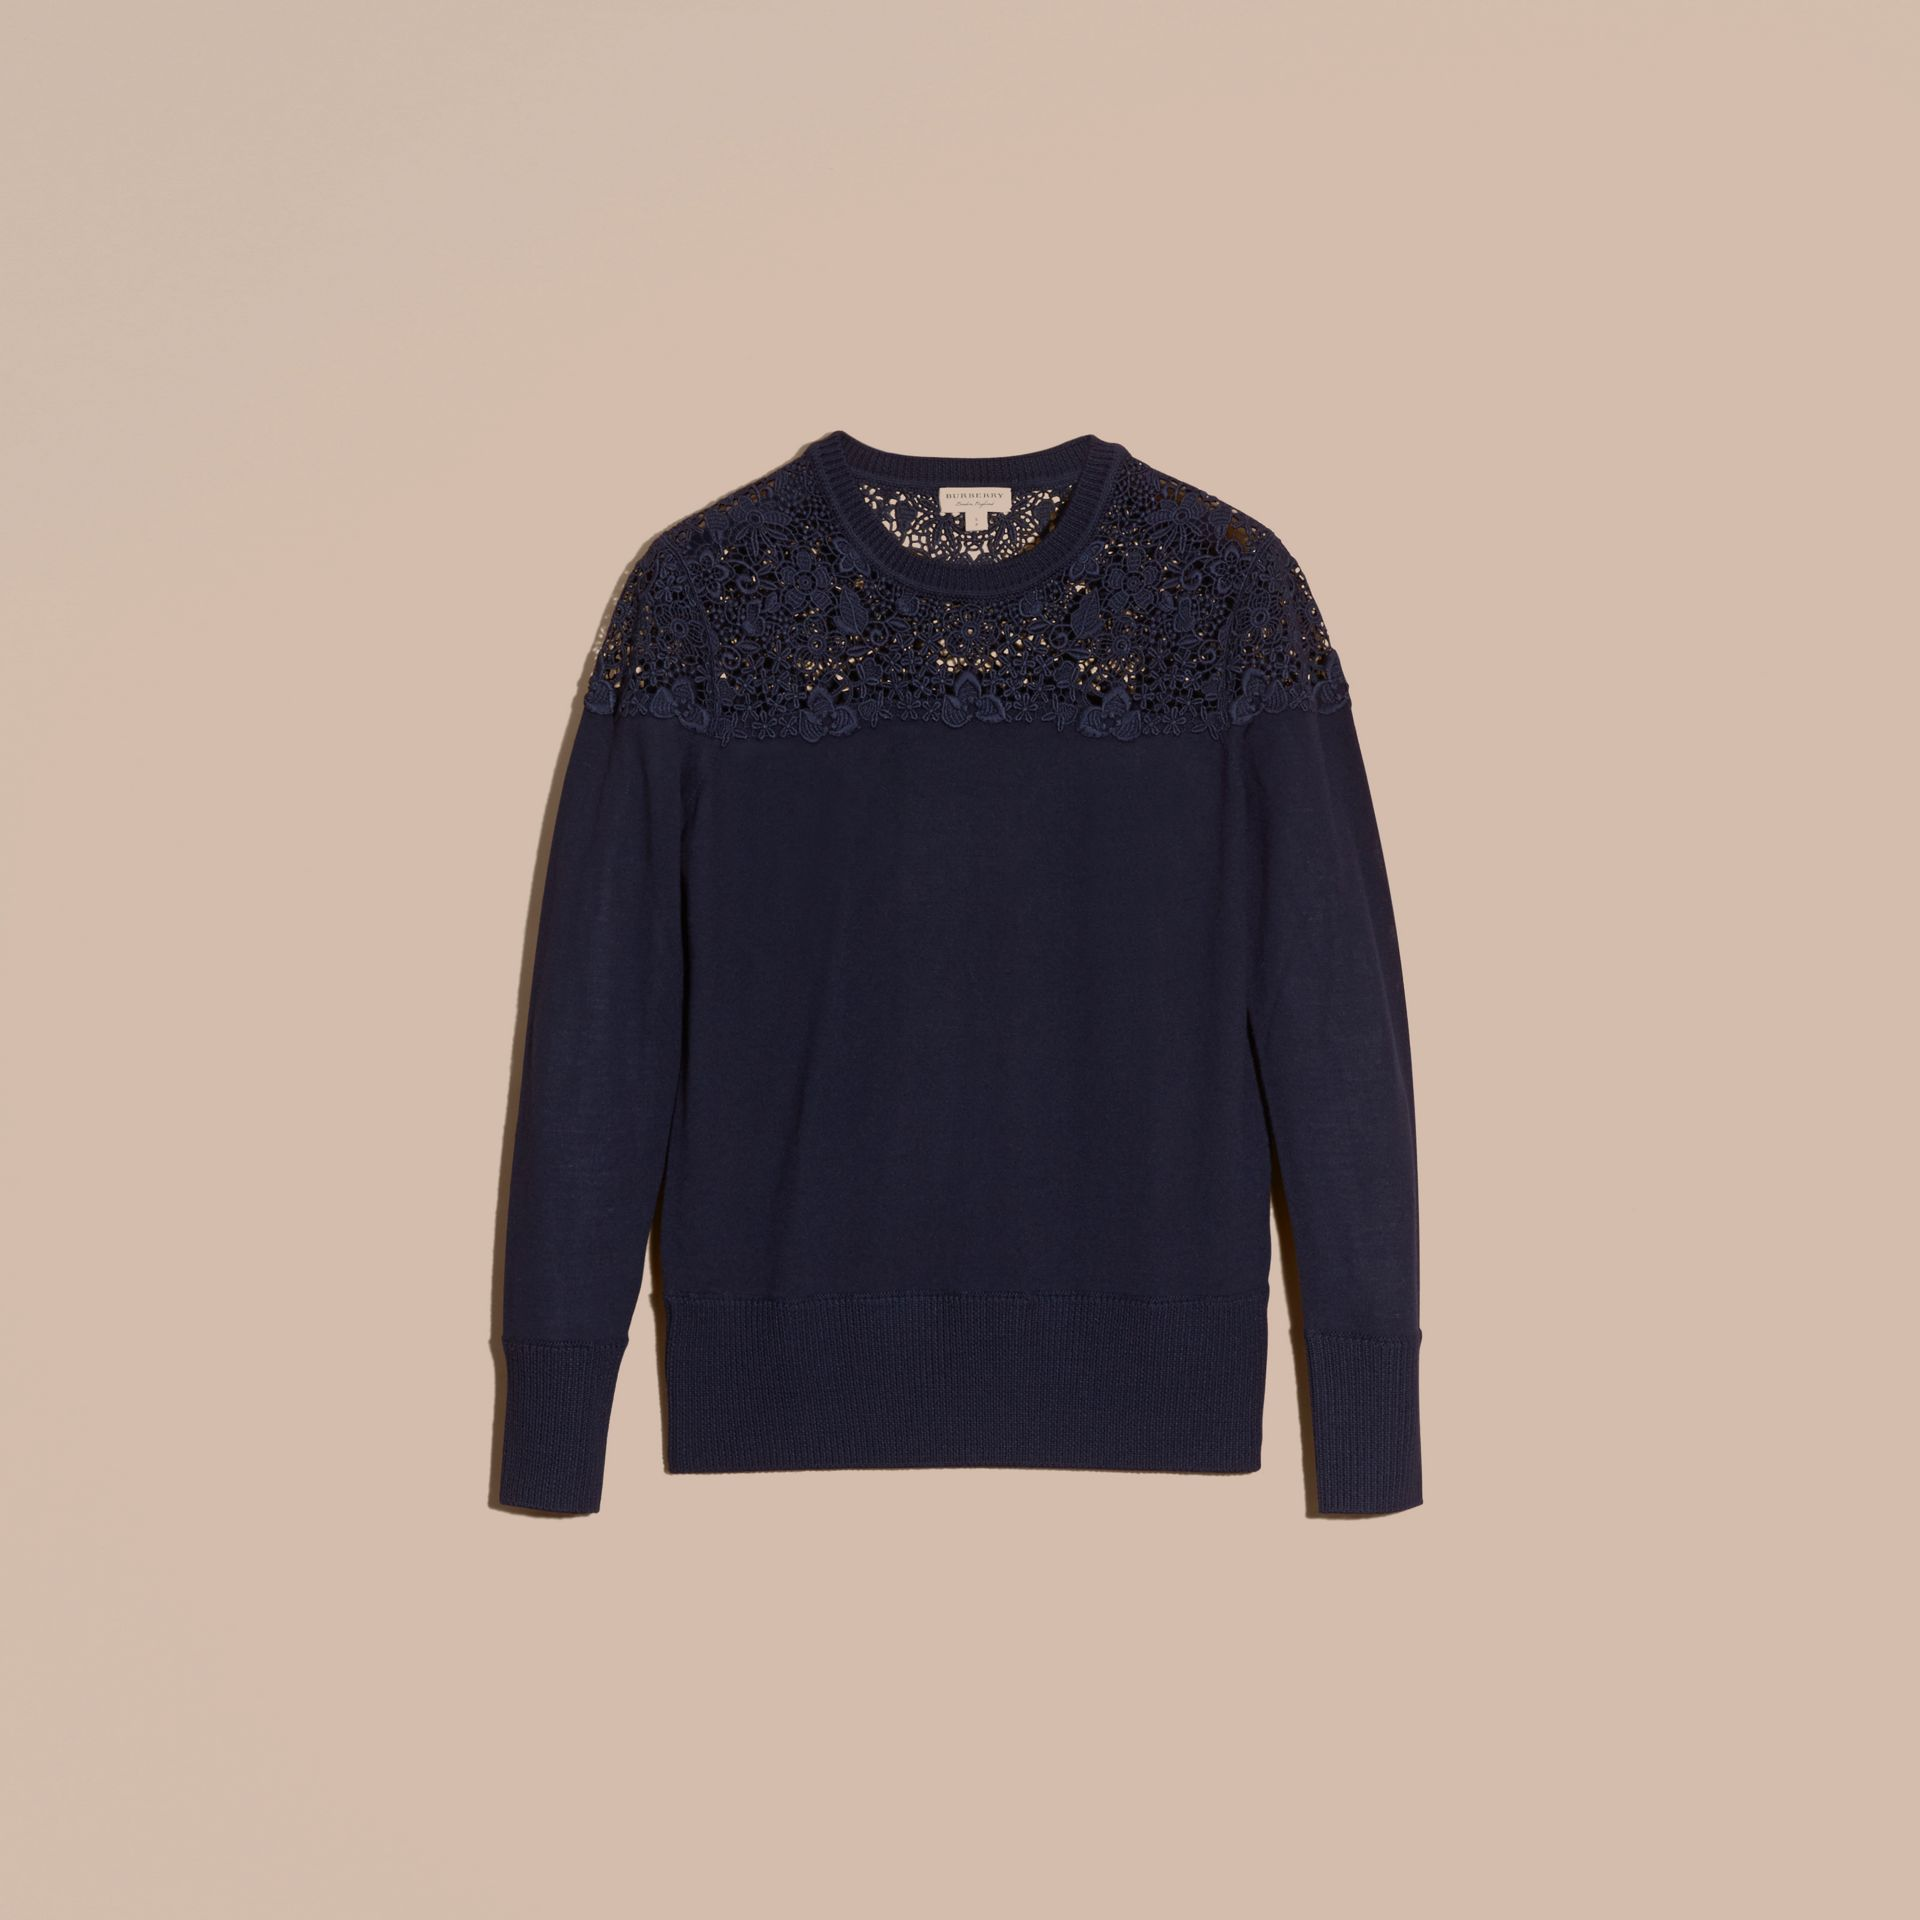 Navy Lace Yoke Merino Wool Sweater Navy - gallery image 4